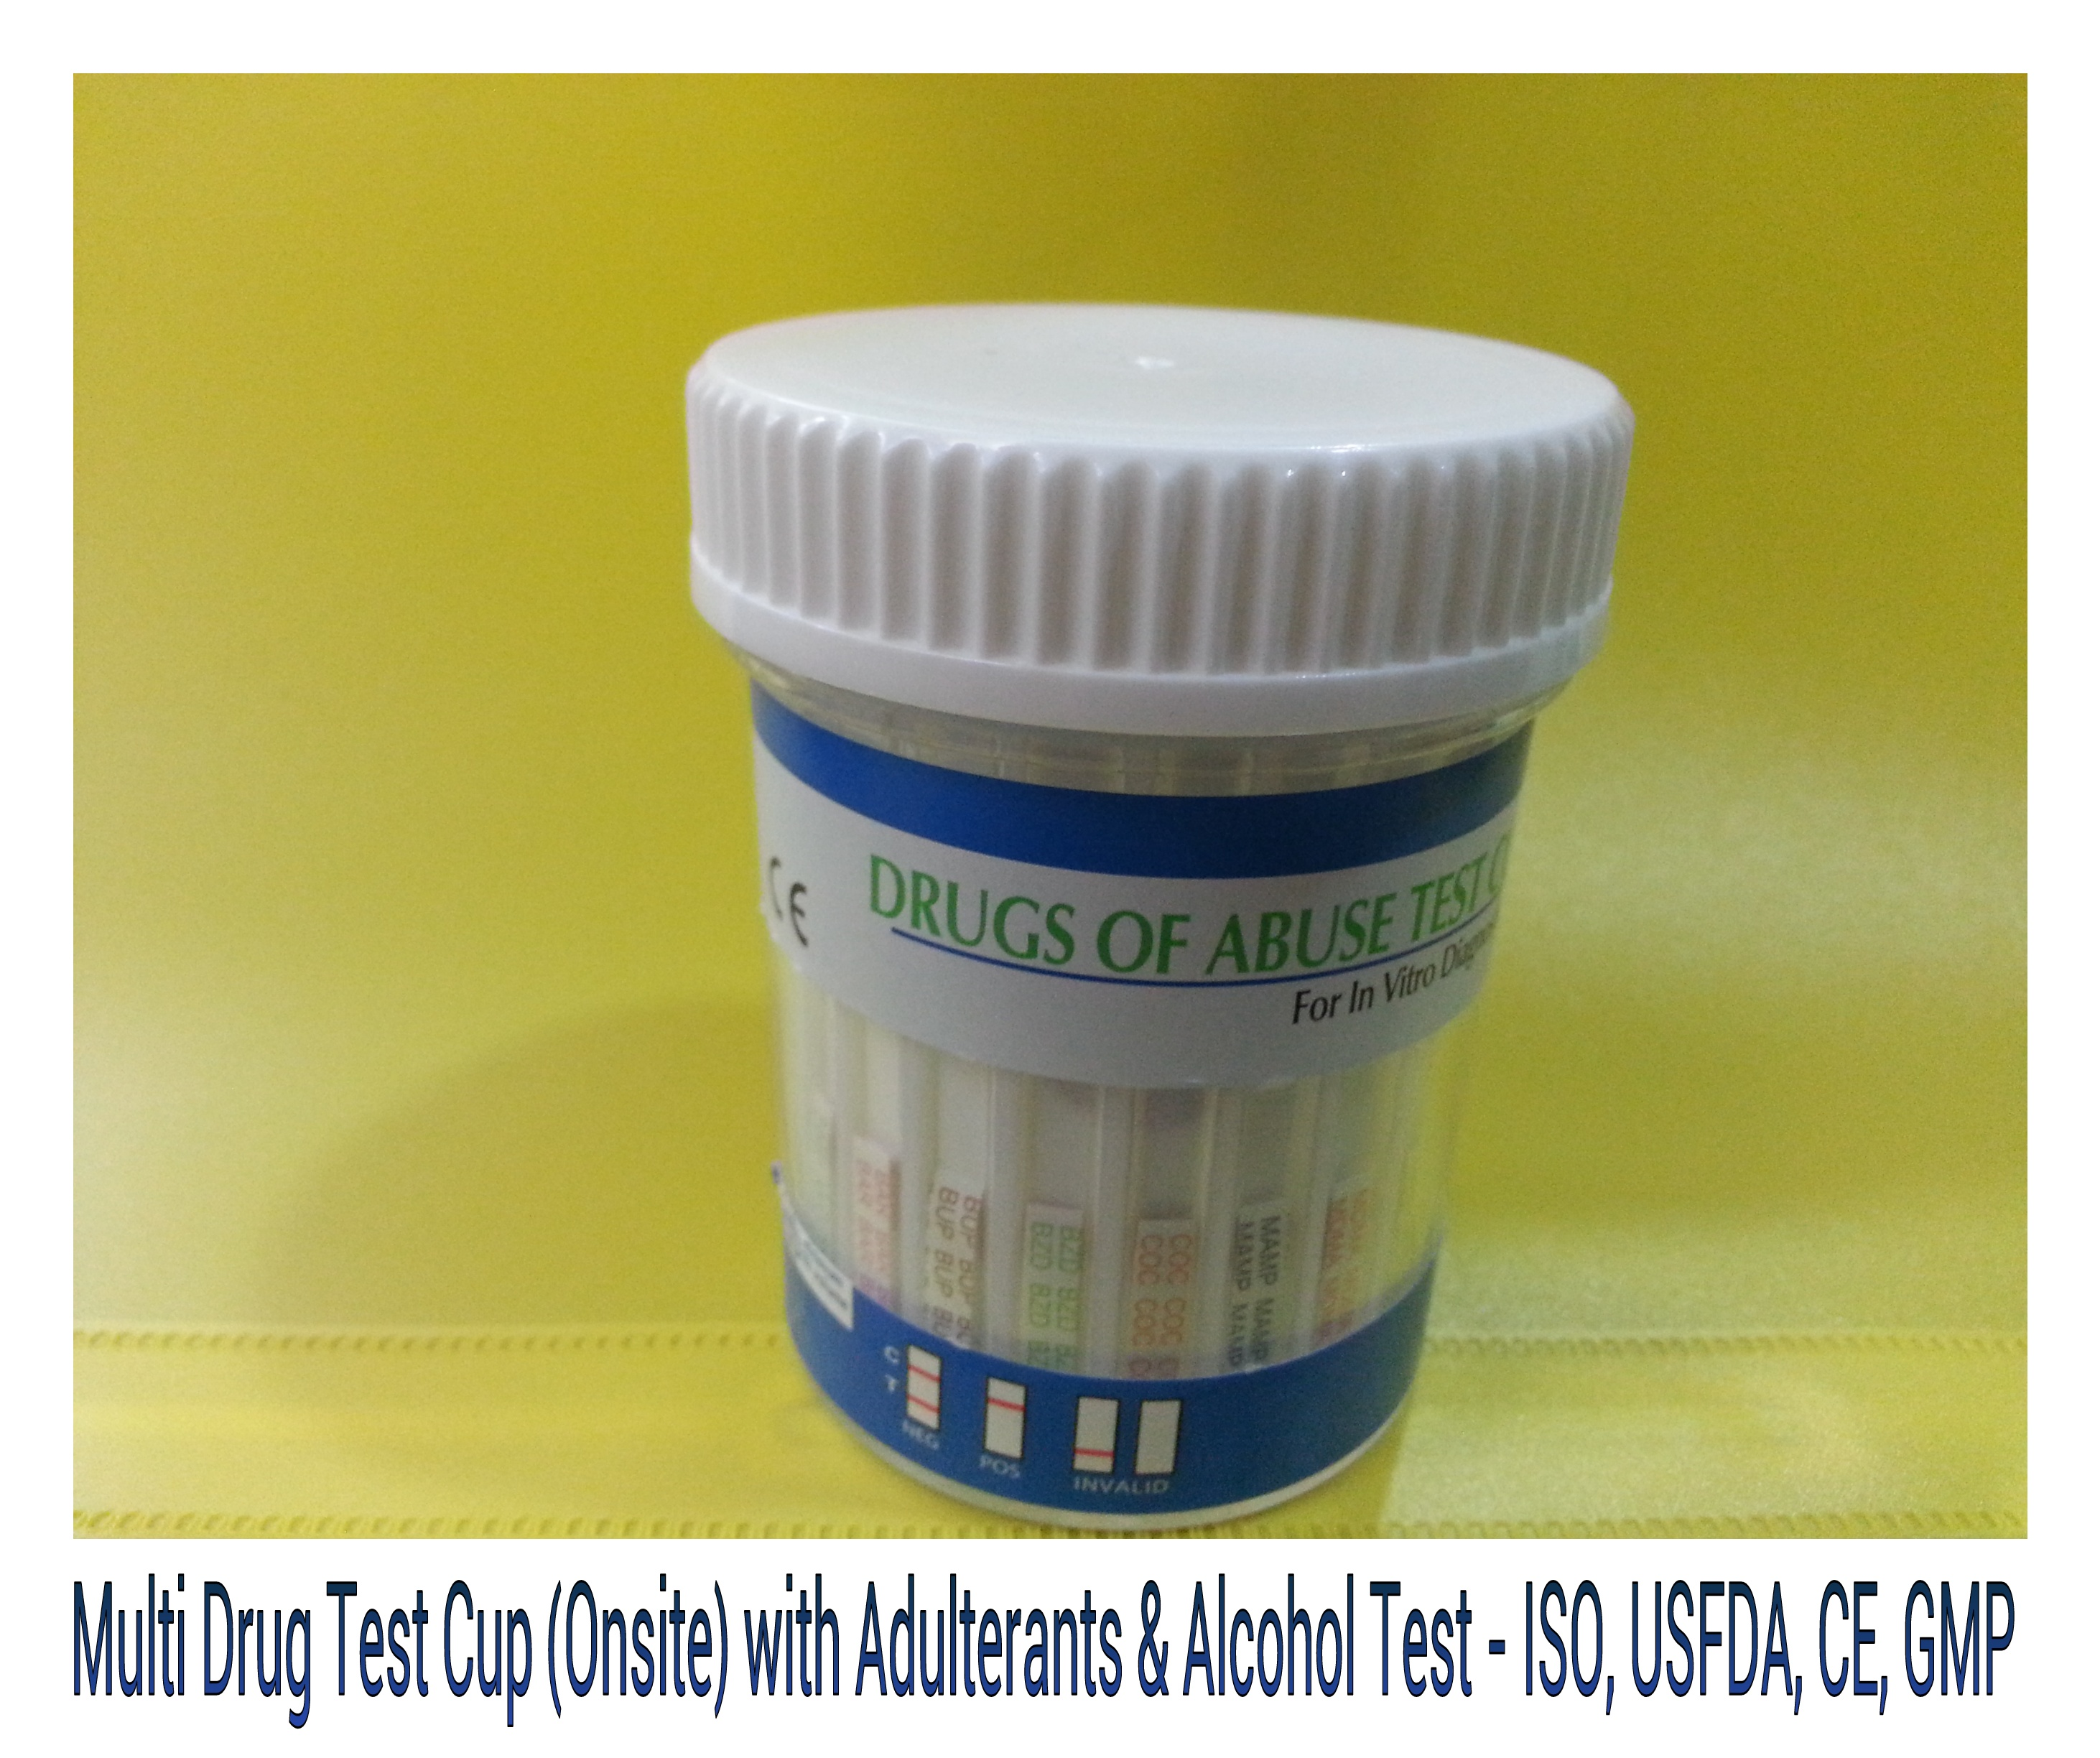 Multi Drug Rapid Test Kit We Are Specialized In Distribution Of Medical Diagnostic Devices Especially In D I Y Multi Drug Test Kit Screen Urine For More Than One Category Of Drugs